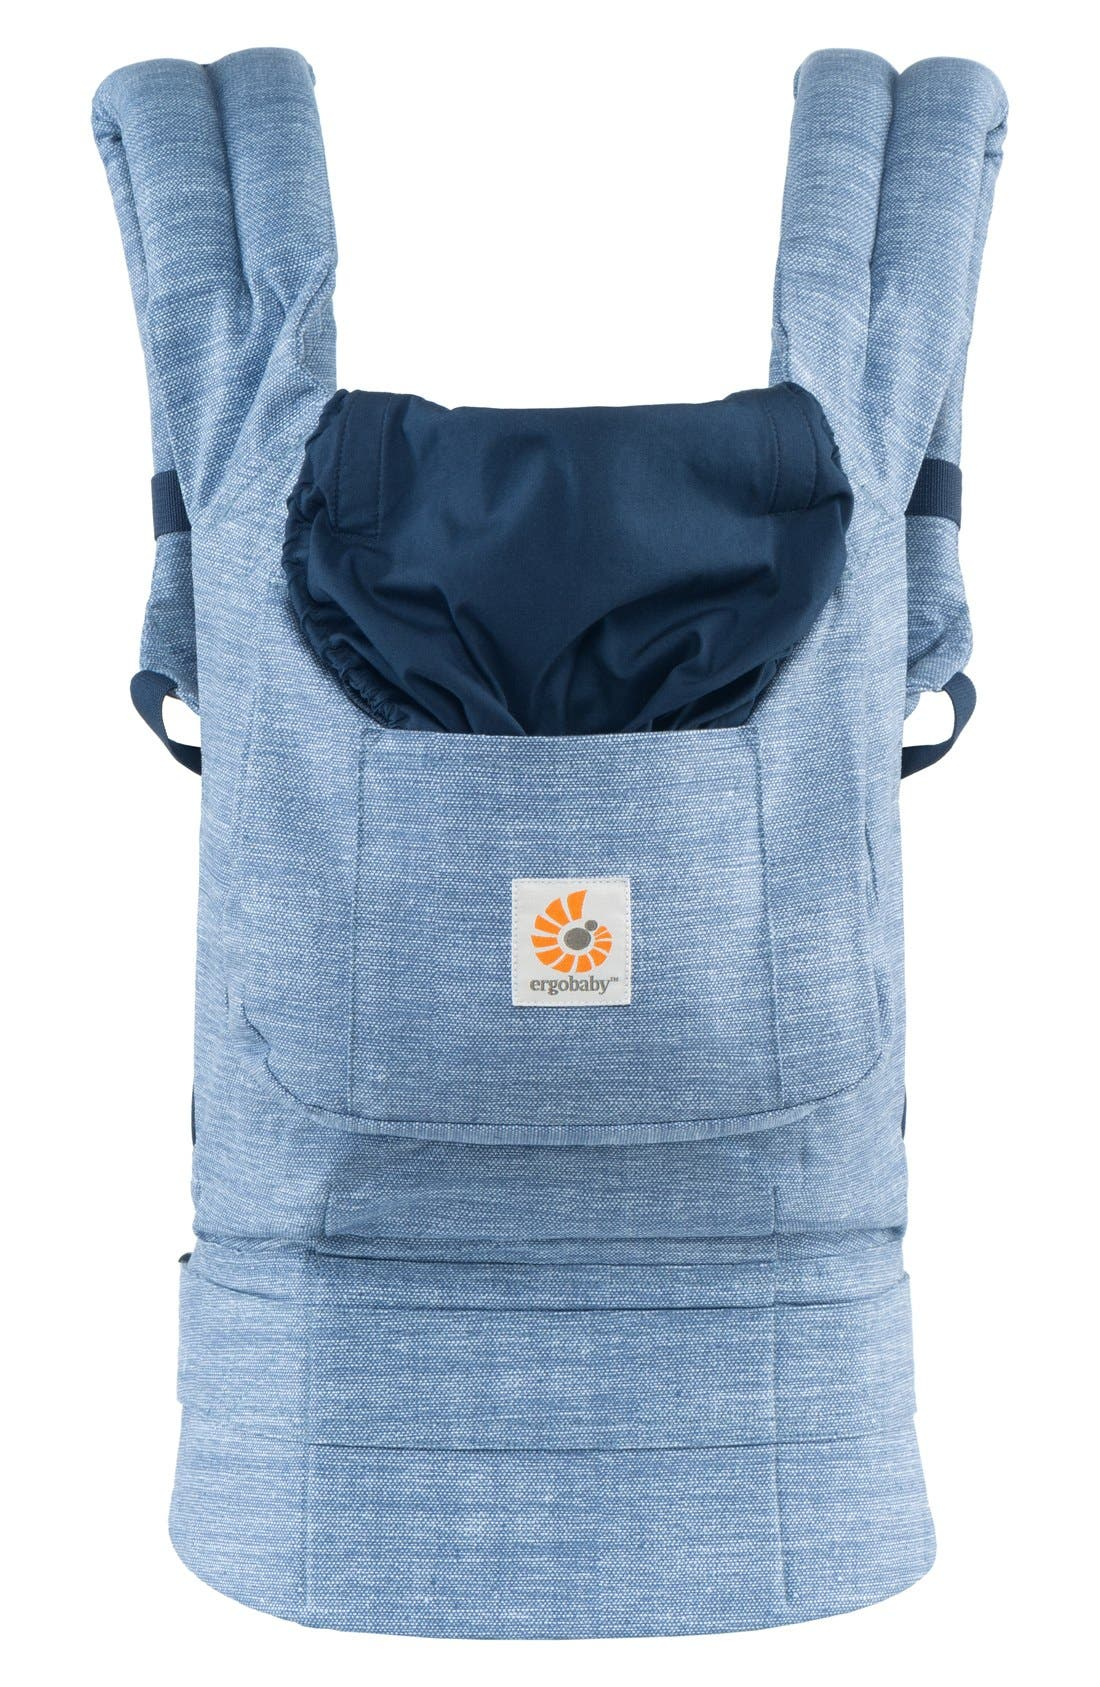 'Original' Cotton Baby Carrier,                         Main,                         color, Vintage Blue